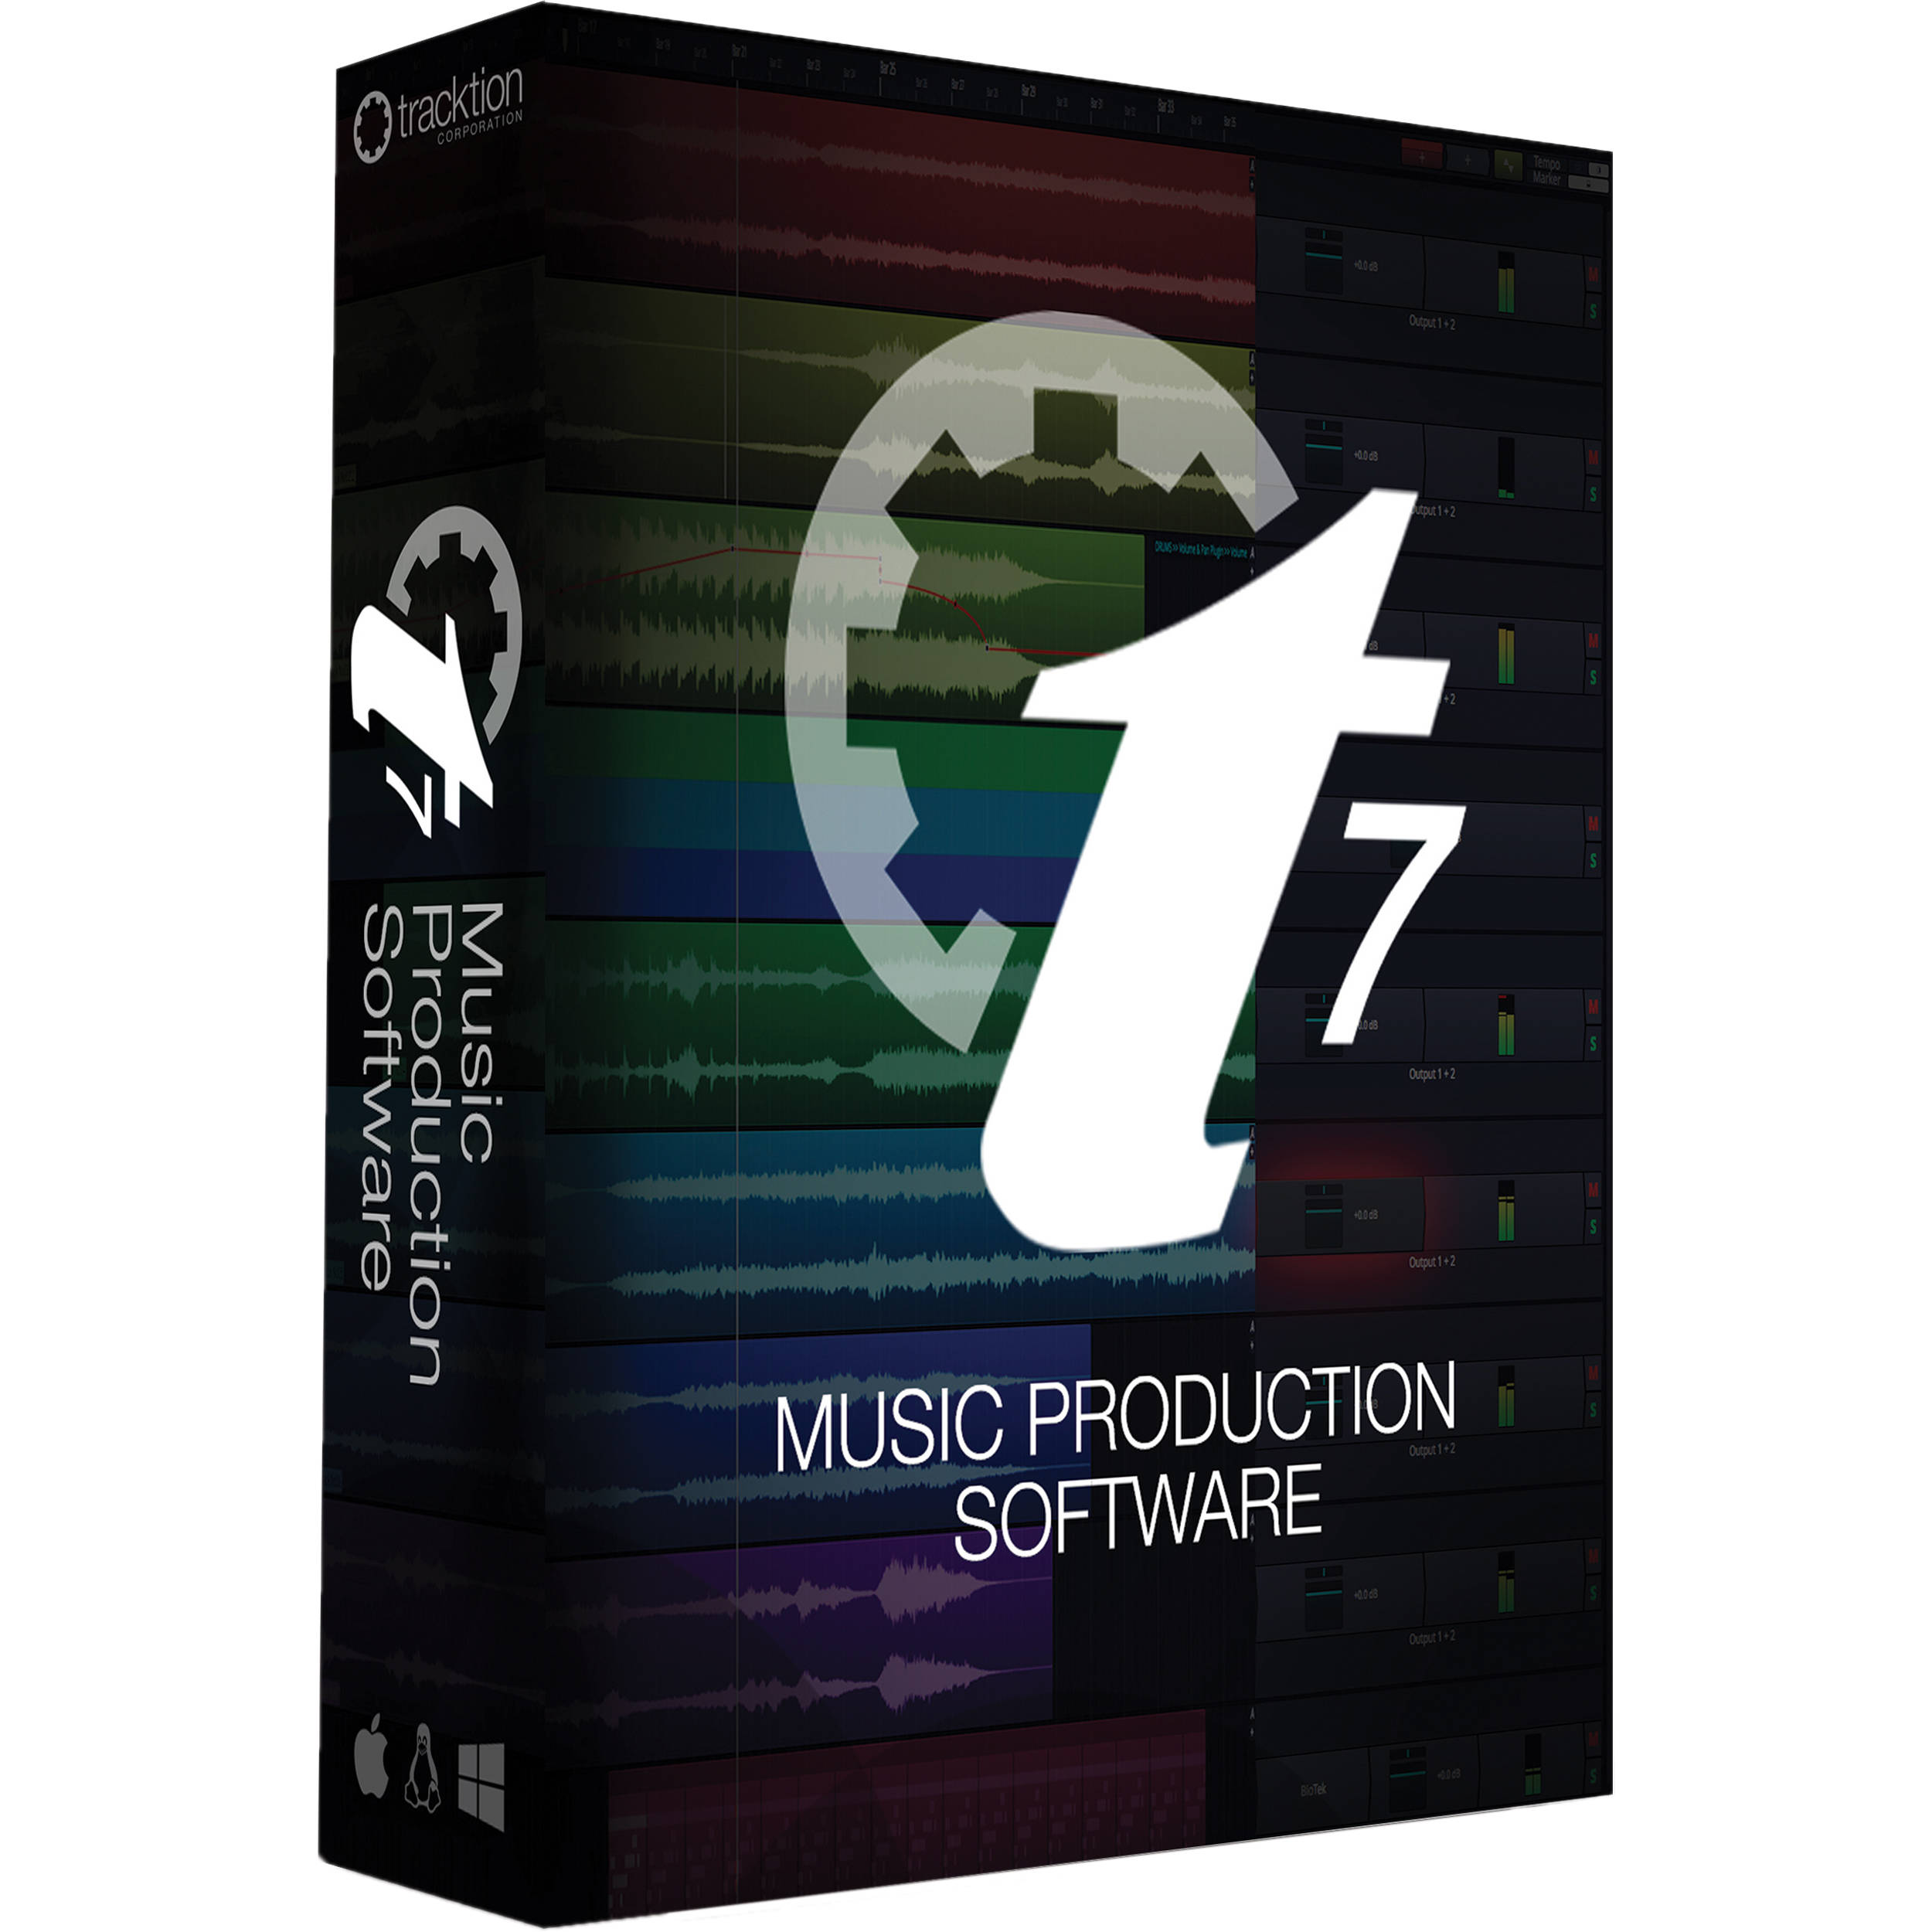 Tracktion t7 digital audio workstation is now free! Bedroom.